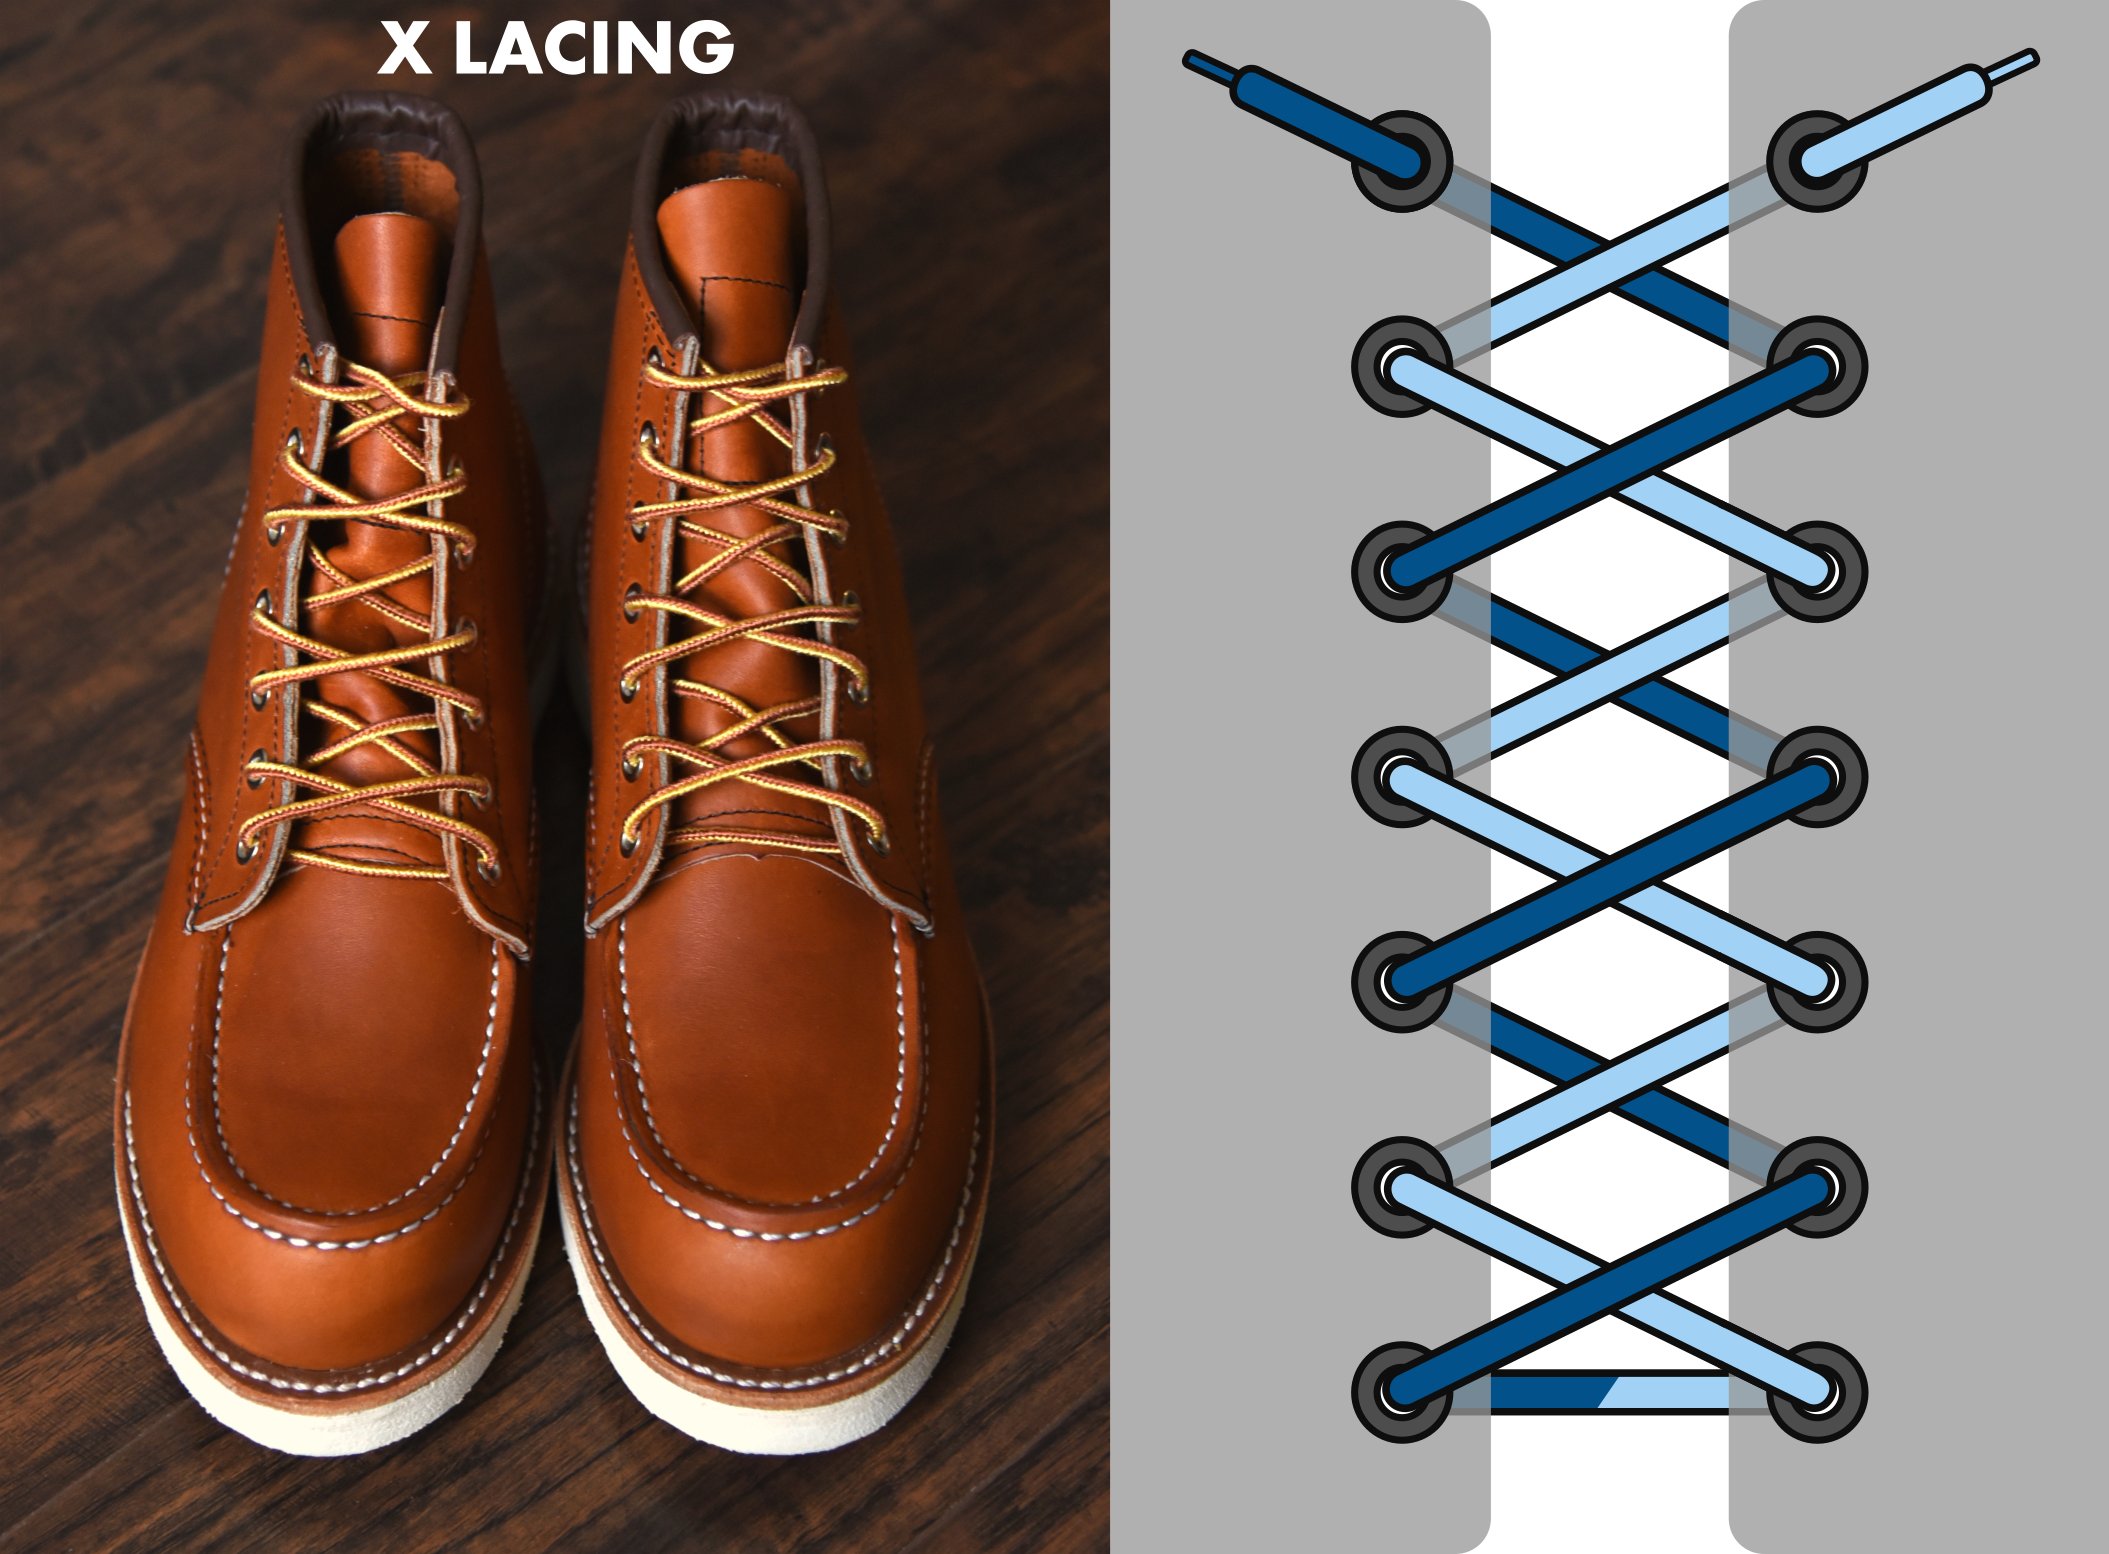 Over under or X lacing diagram for boots